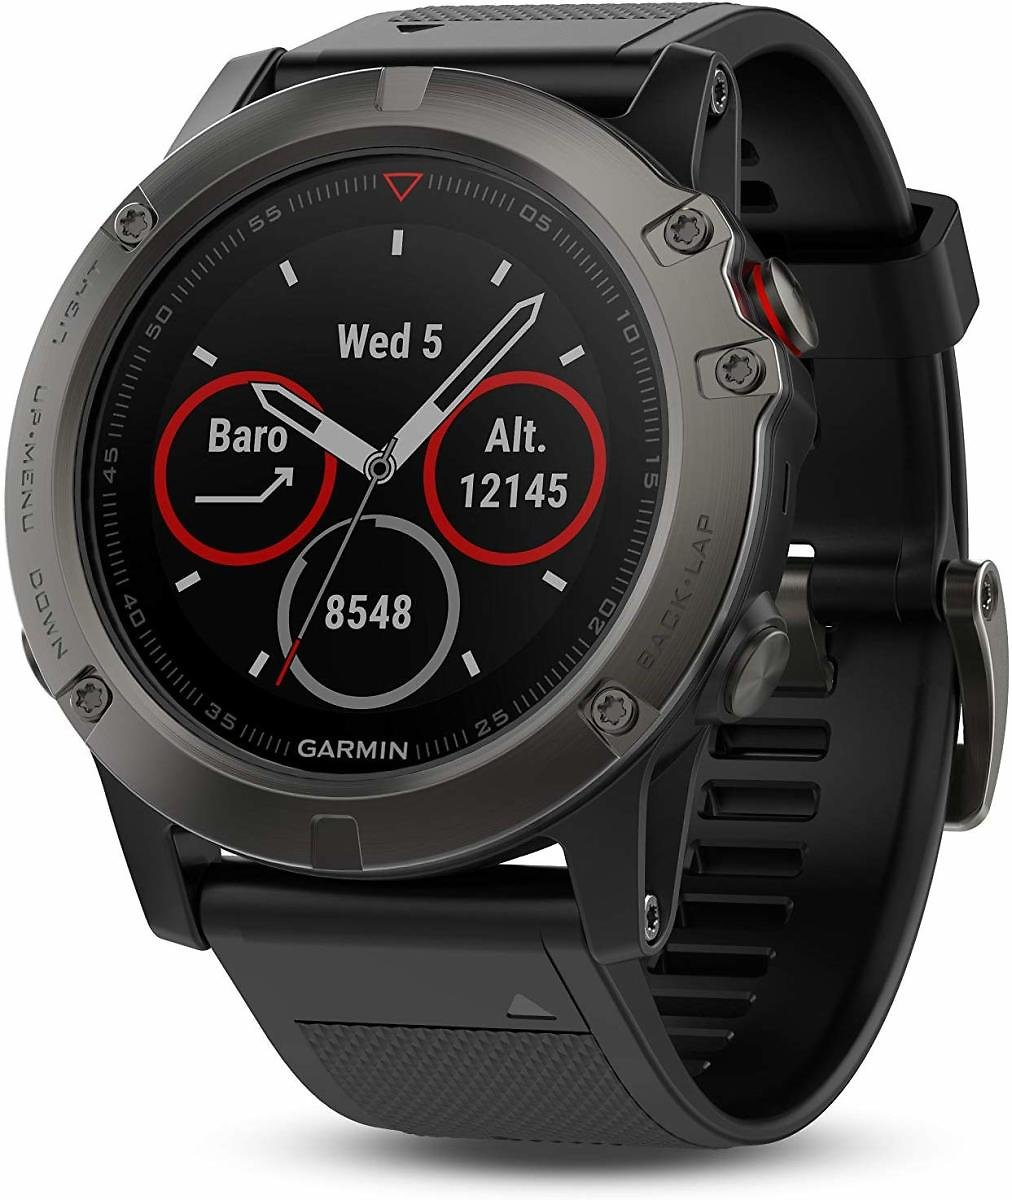 Today Only! Garmin Fenix 5X Sapphire - Slate Gray with Black Band